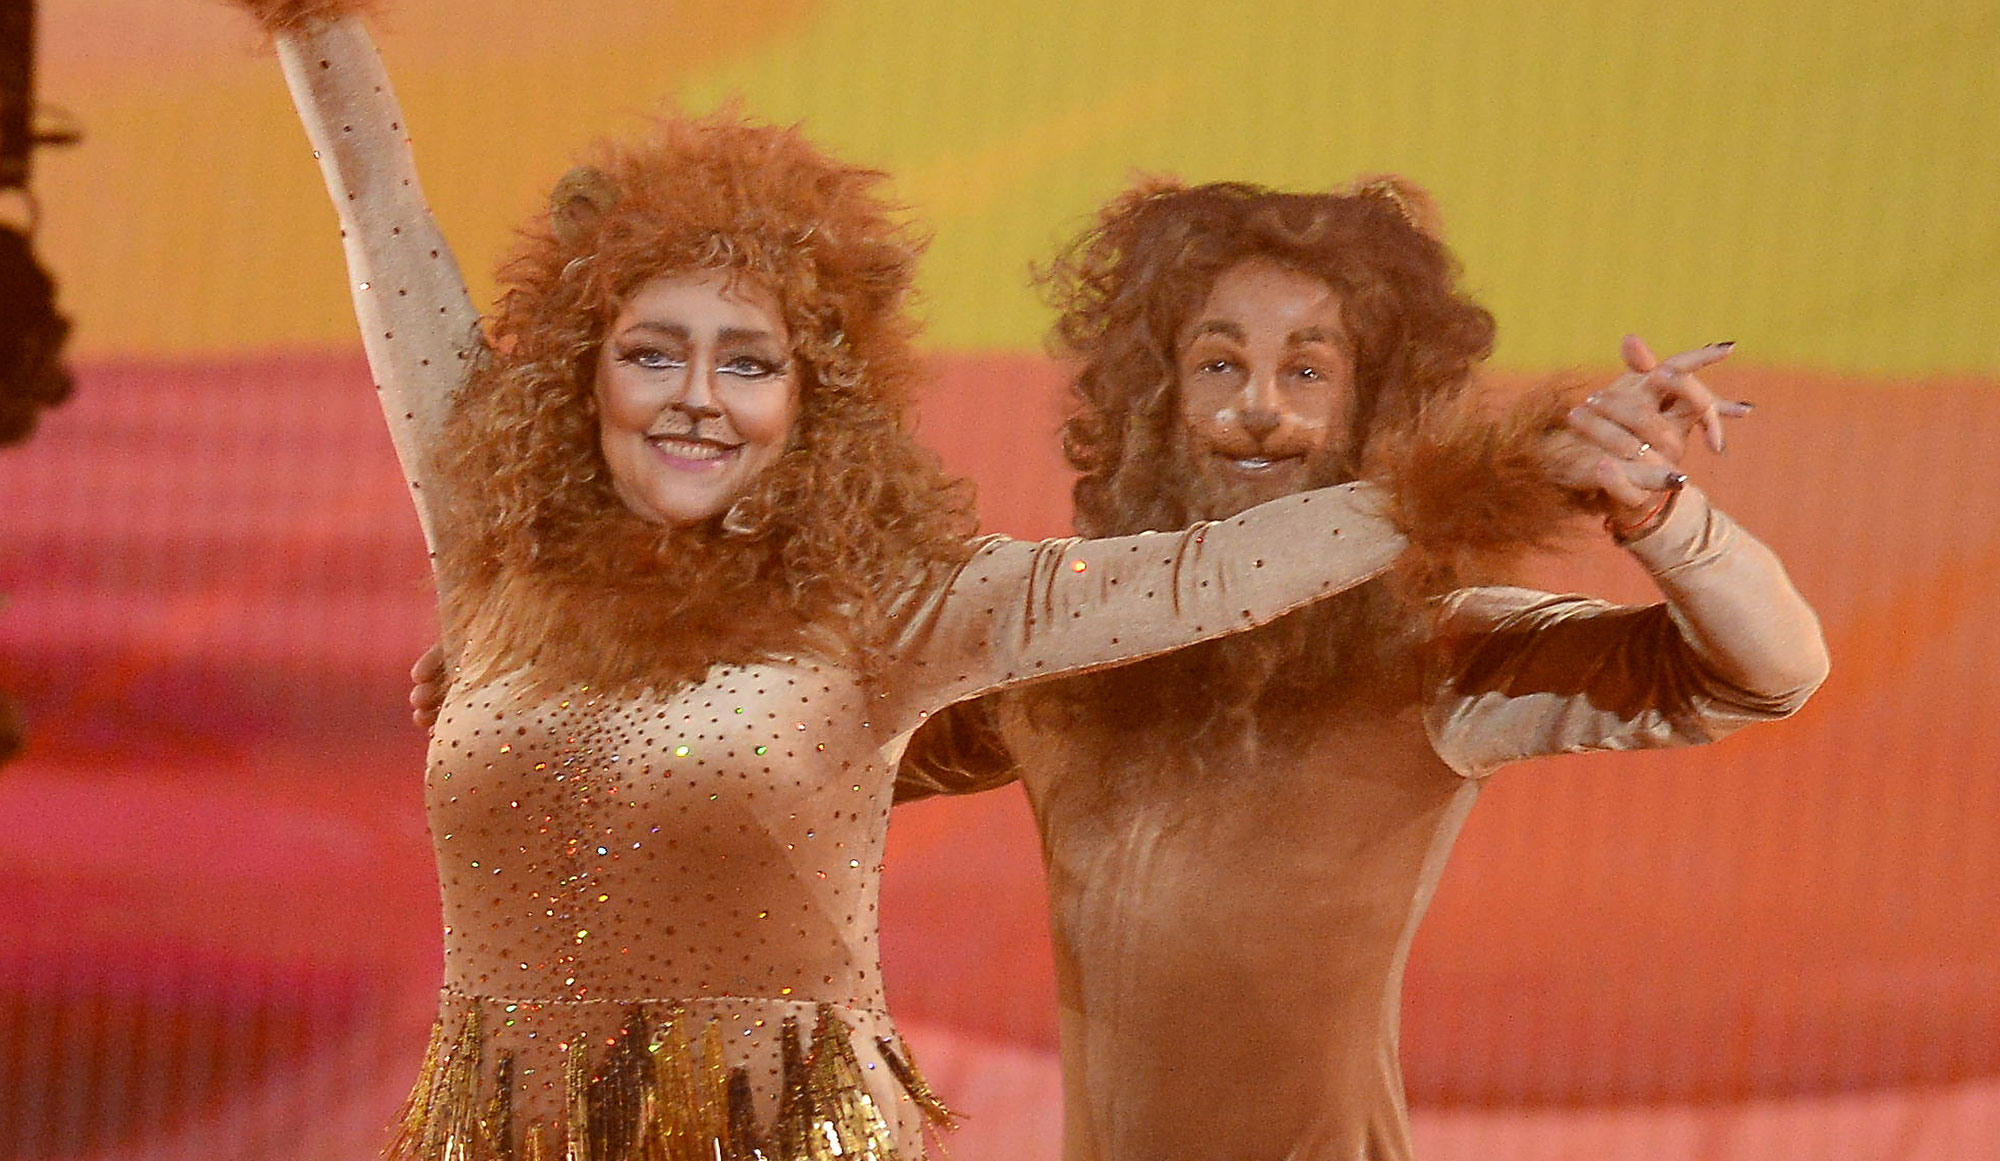 Carole Baskin went out like a lion on 'Dancing with the Stars': In the ballroom, the mighty ballroom, she danced on 'Disney Night' [WATCH]